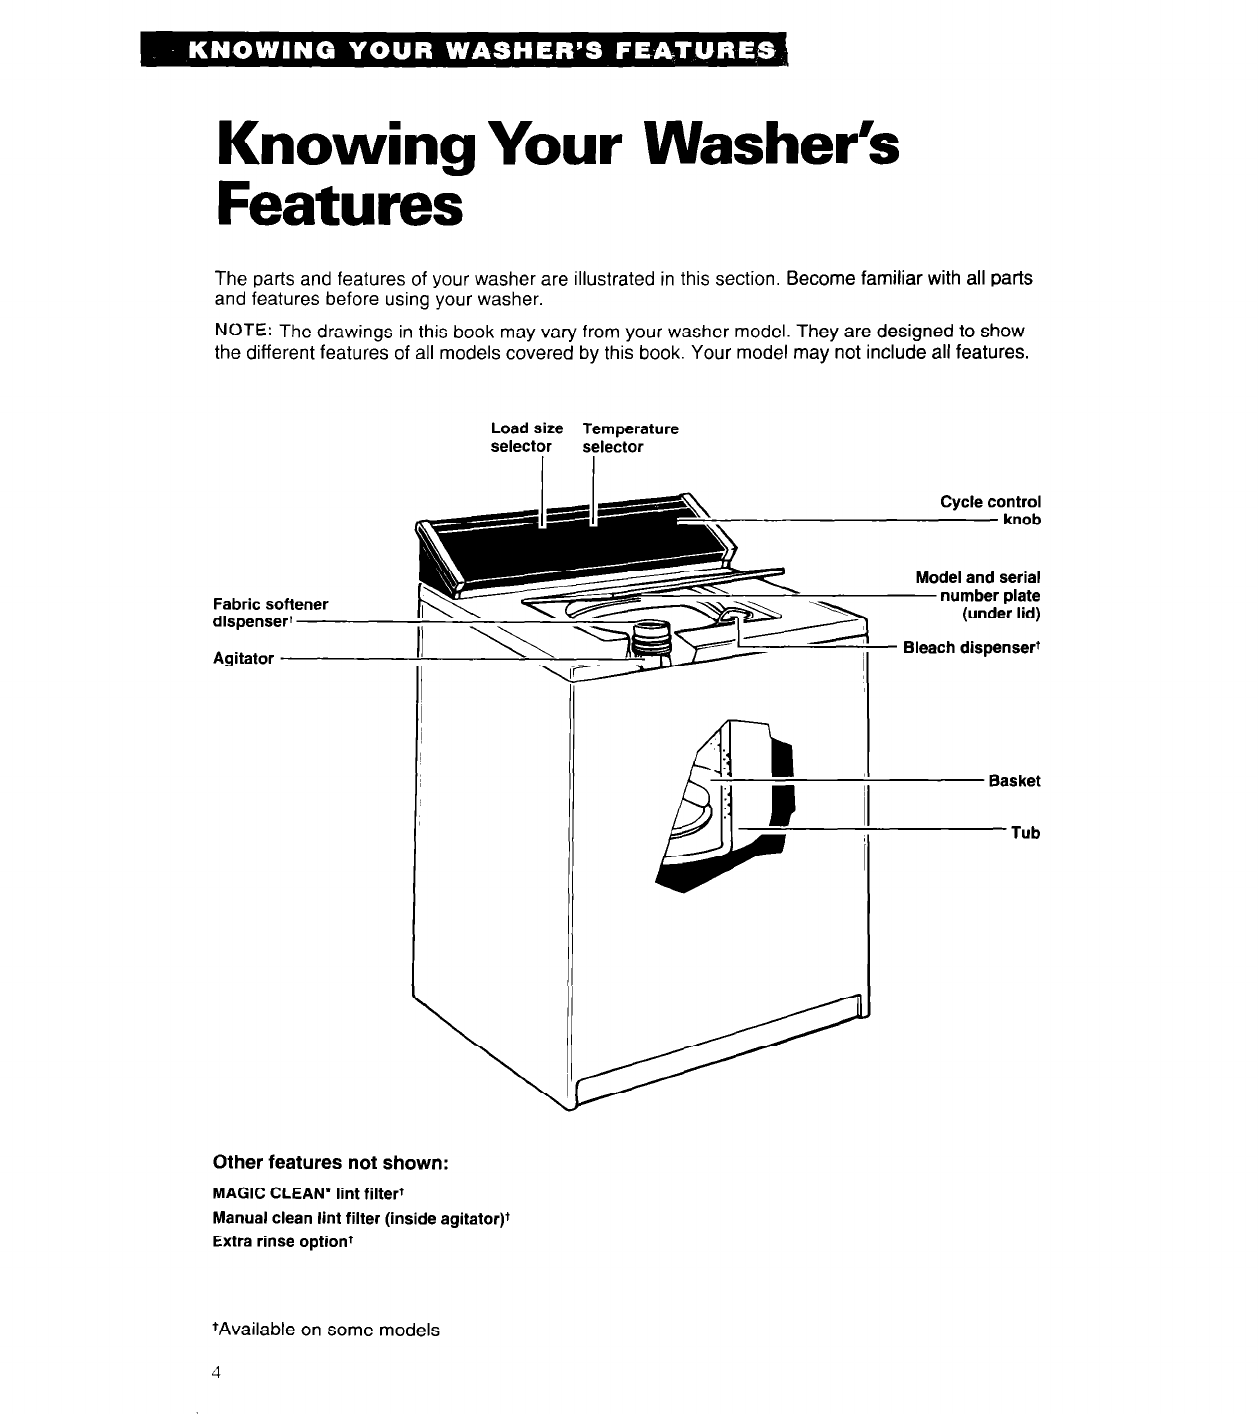 Page 4 of Whirlpool Washer/Dryer 3360461 User Guide